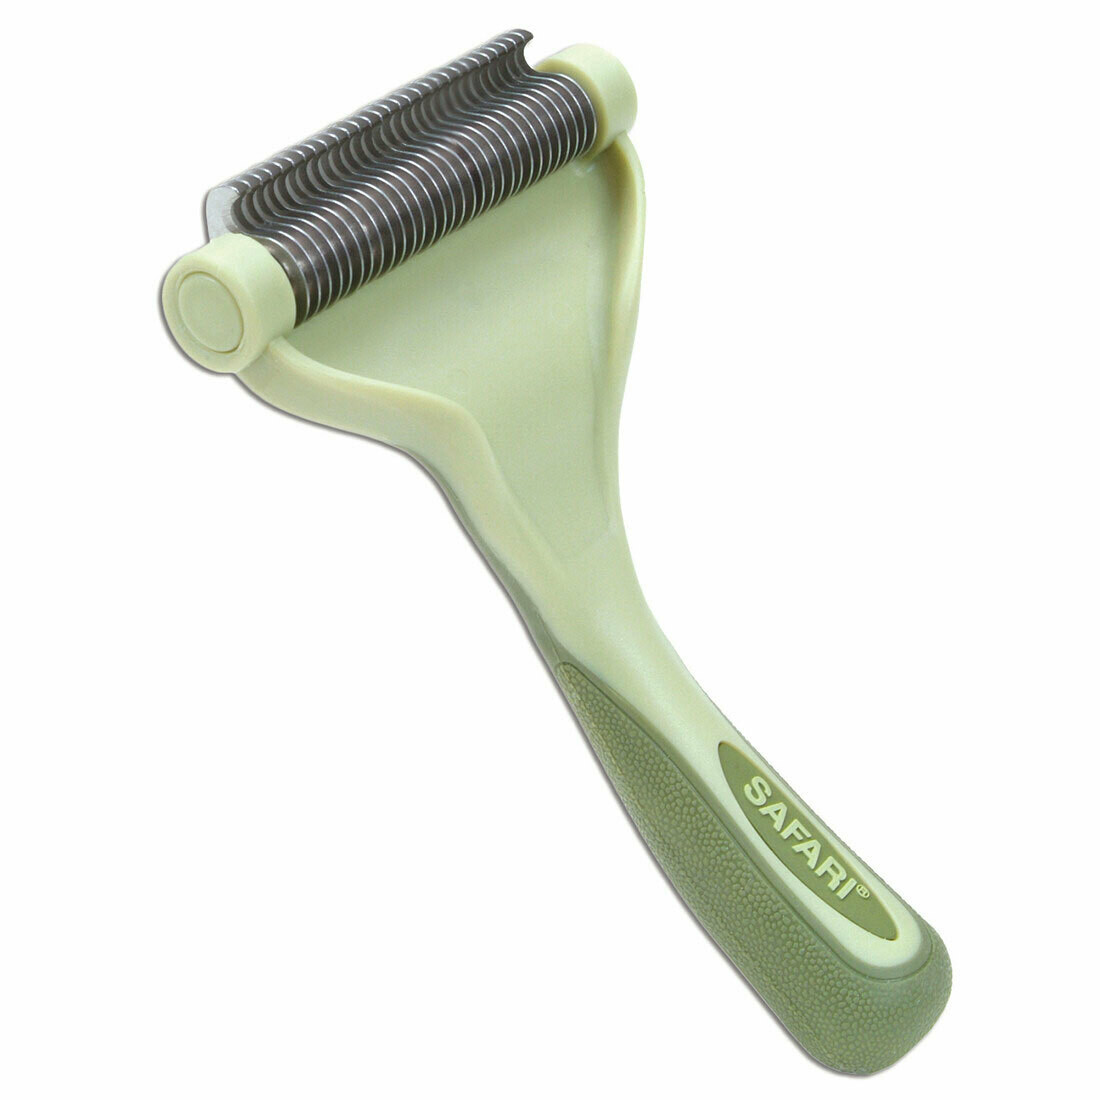 Shed Magic De-Shedding Tool For Small Dogs With Medium To Long Hair